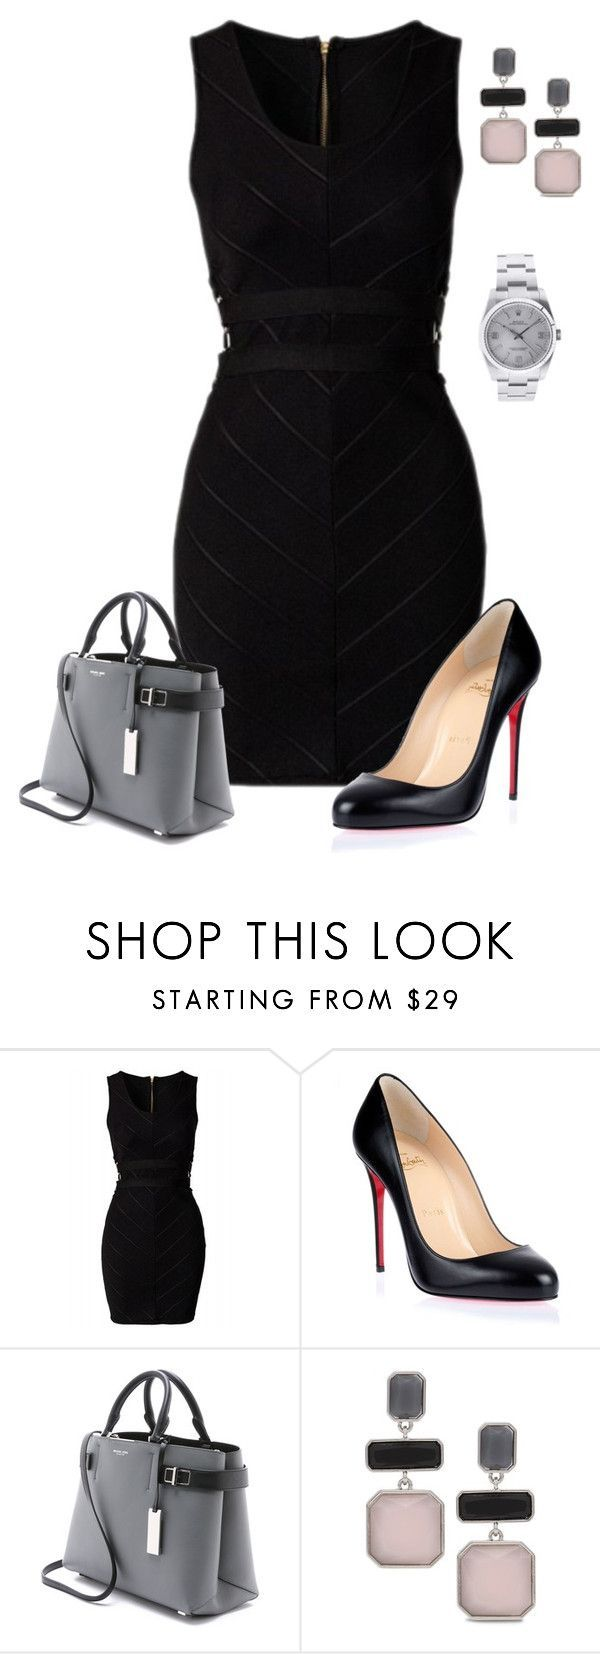 """Untitled #607"" by angela-vitello on Polyvore featuring Christian Louboutin, Michael Kors, Chico's and Rolex"